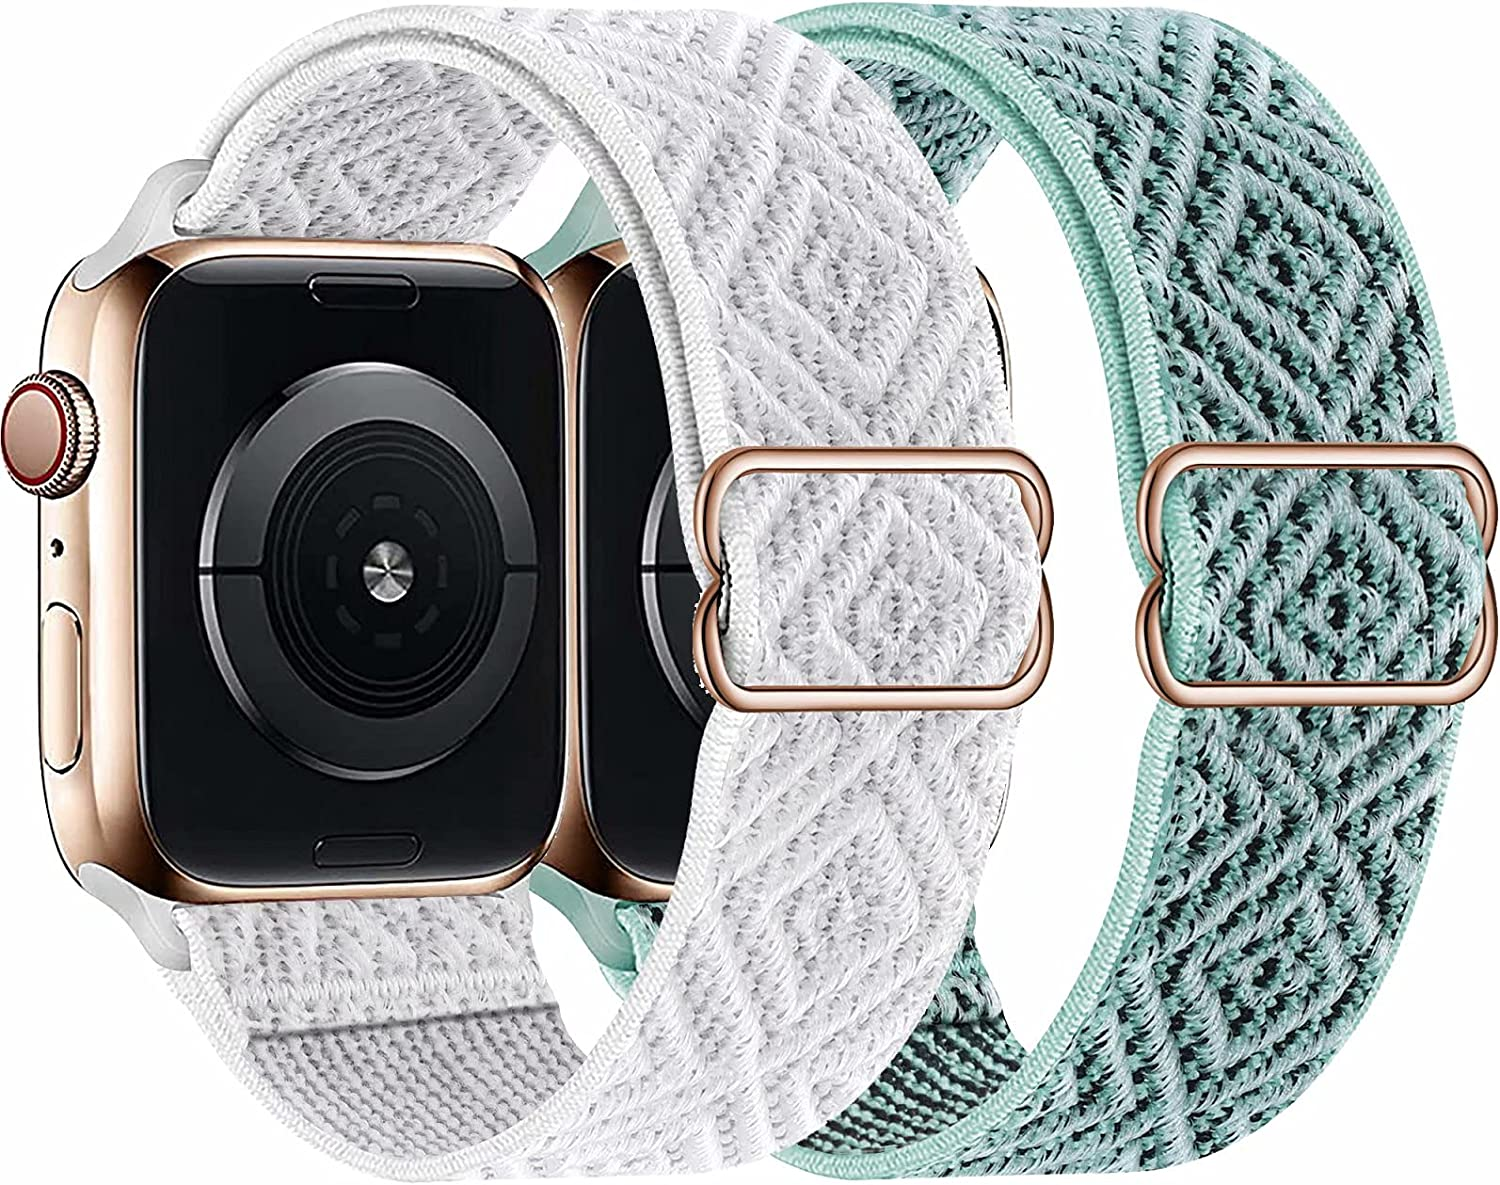 2-Pack ADWLOF Stretchy Solo Loop Strap Compatible with Apple Watch Bands 38mm 40mm 42mm 44mm,Diamond Sport Elastics Nylon Adjustable Stretch Braided for iWatch Series 6/5/4/3/2/1 SE Women Men